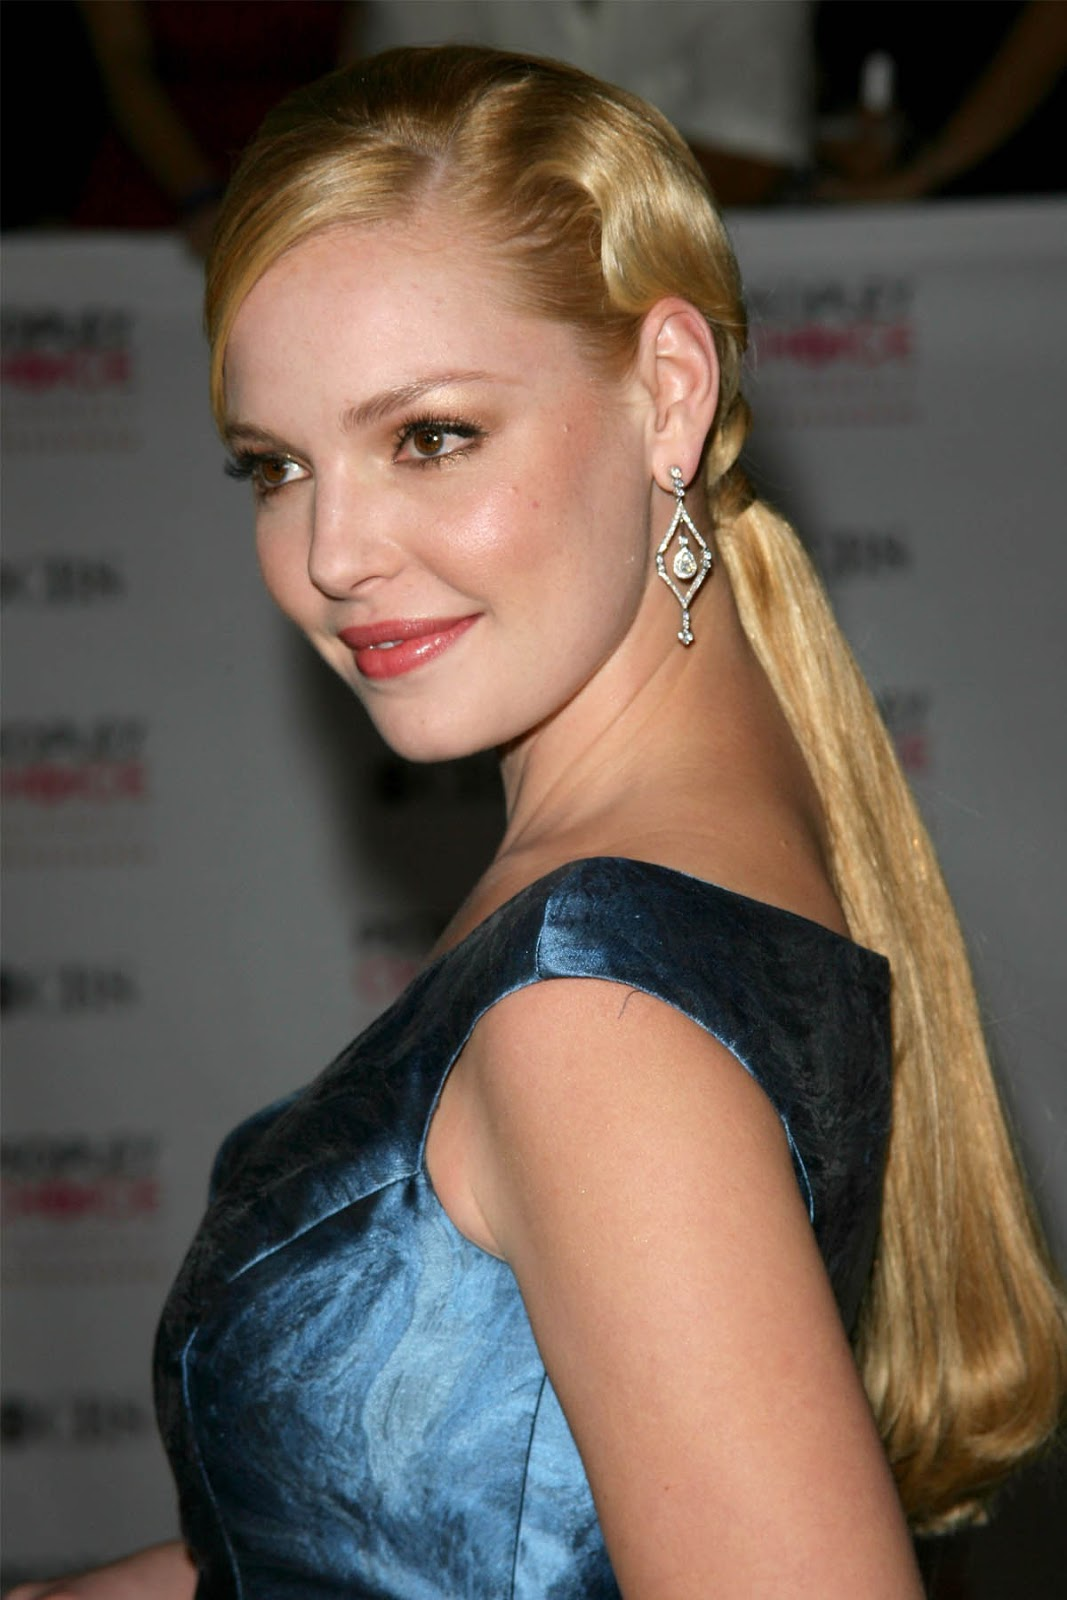 Katherine Heigl before... Katherine Heigl